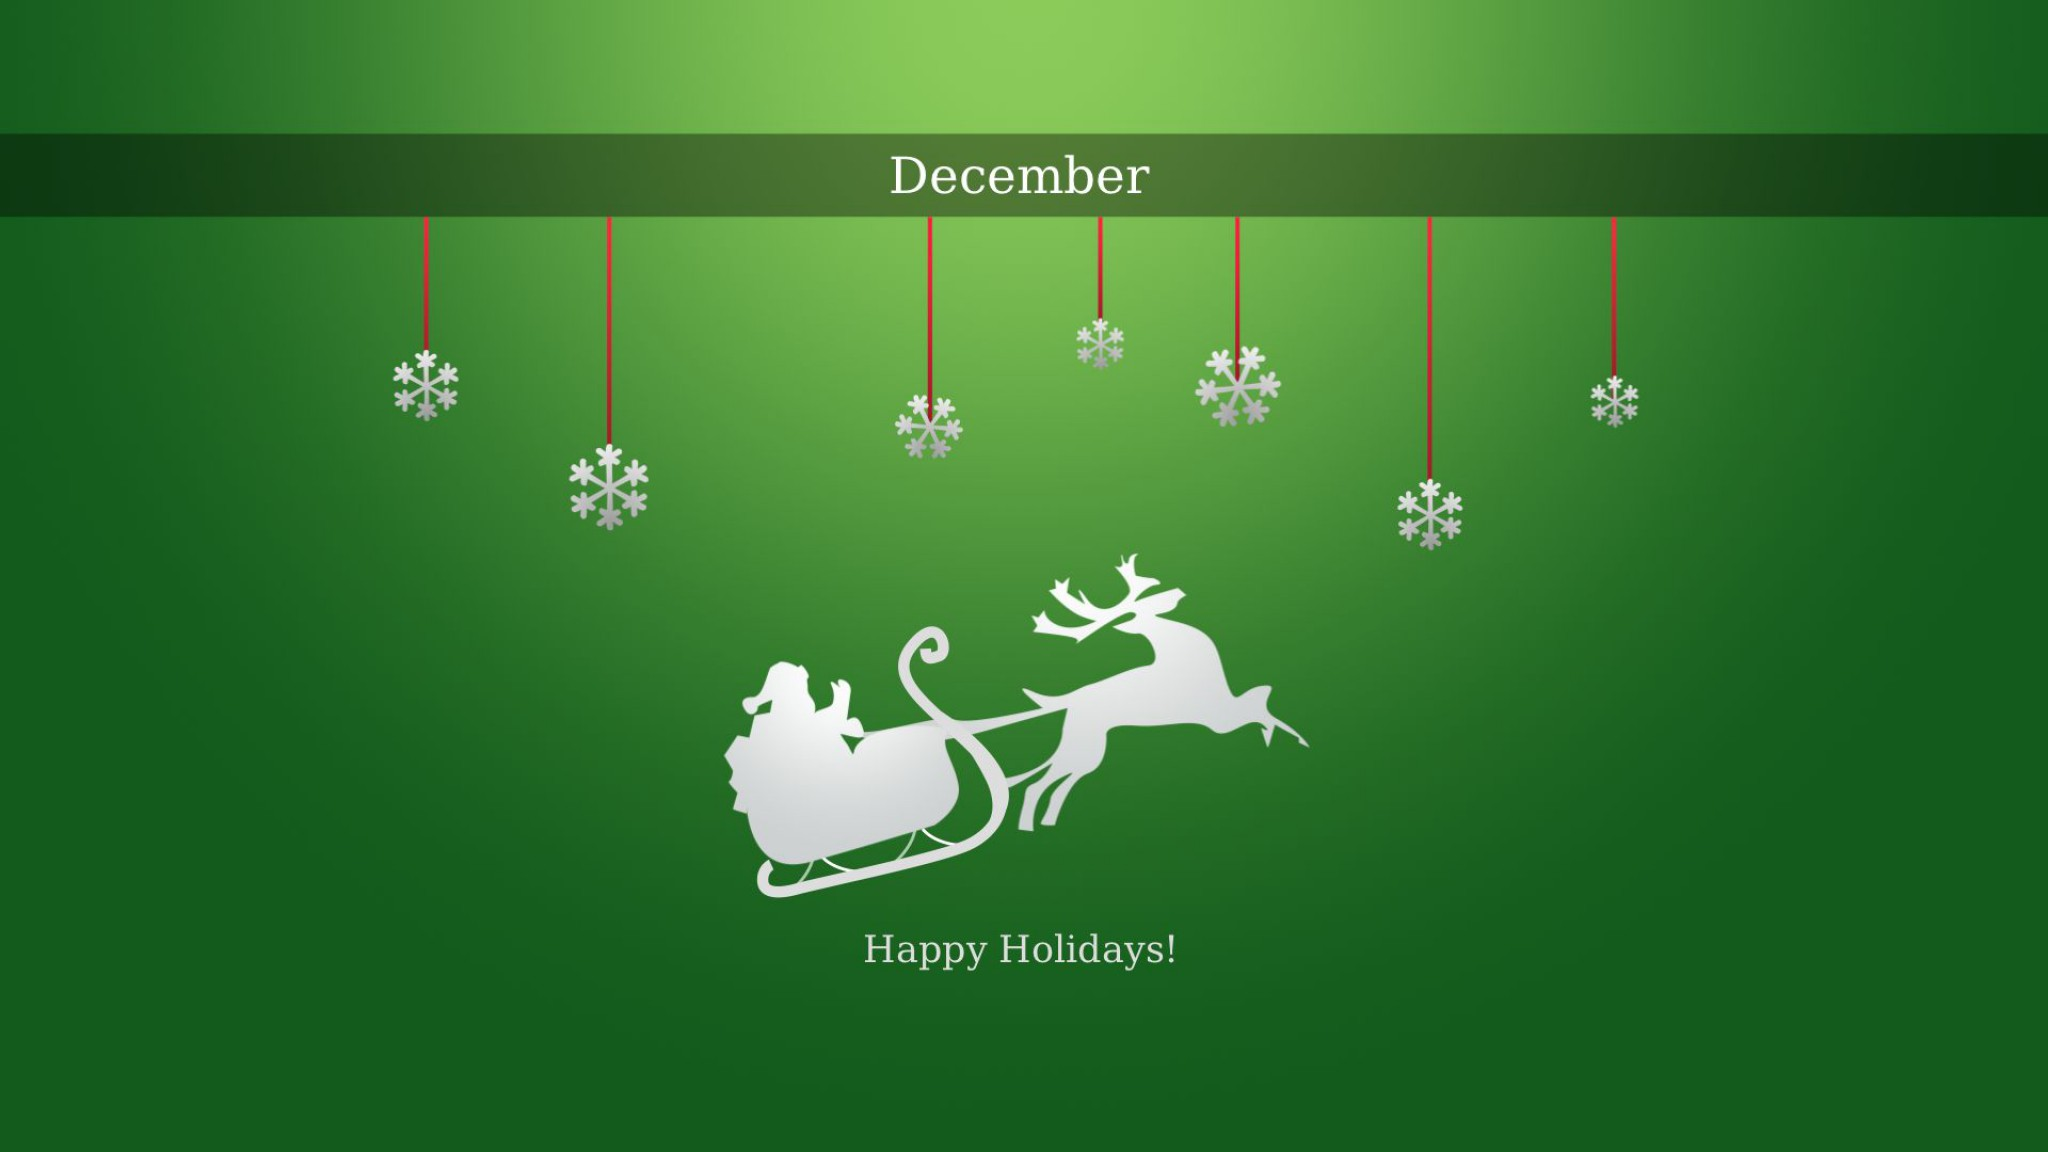 Happy Holidays Hd Wallpaper Background Image 2048x1152 Id